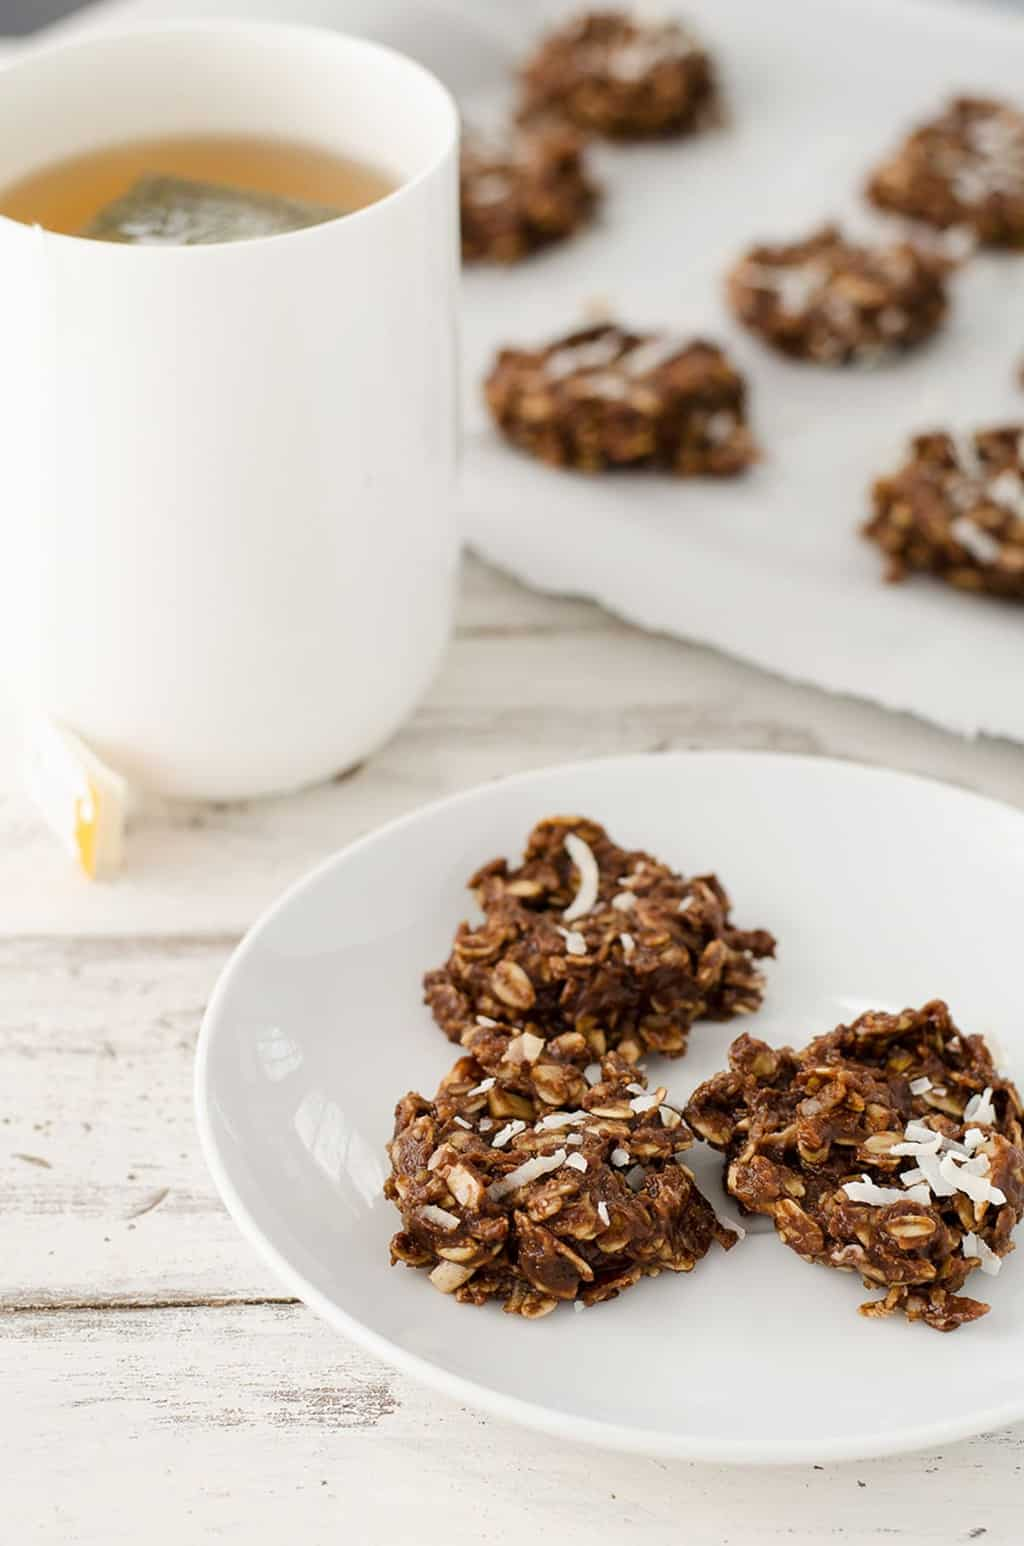 no-bake chocolate almond butter cookies that are perfect for Spring entertaining! - sugar and cloth - ashley rose - houston blogger